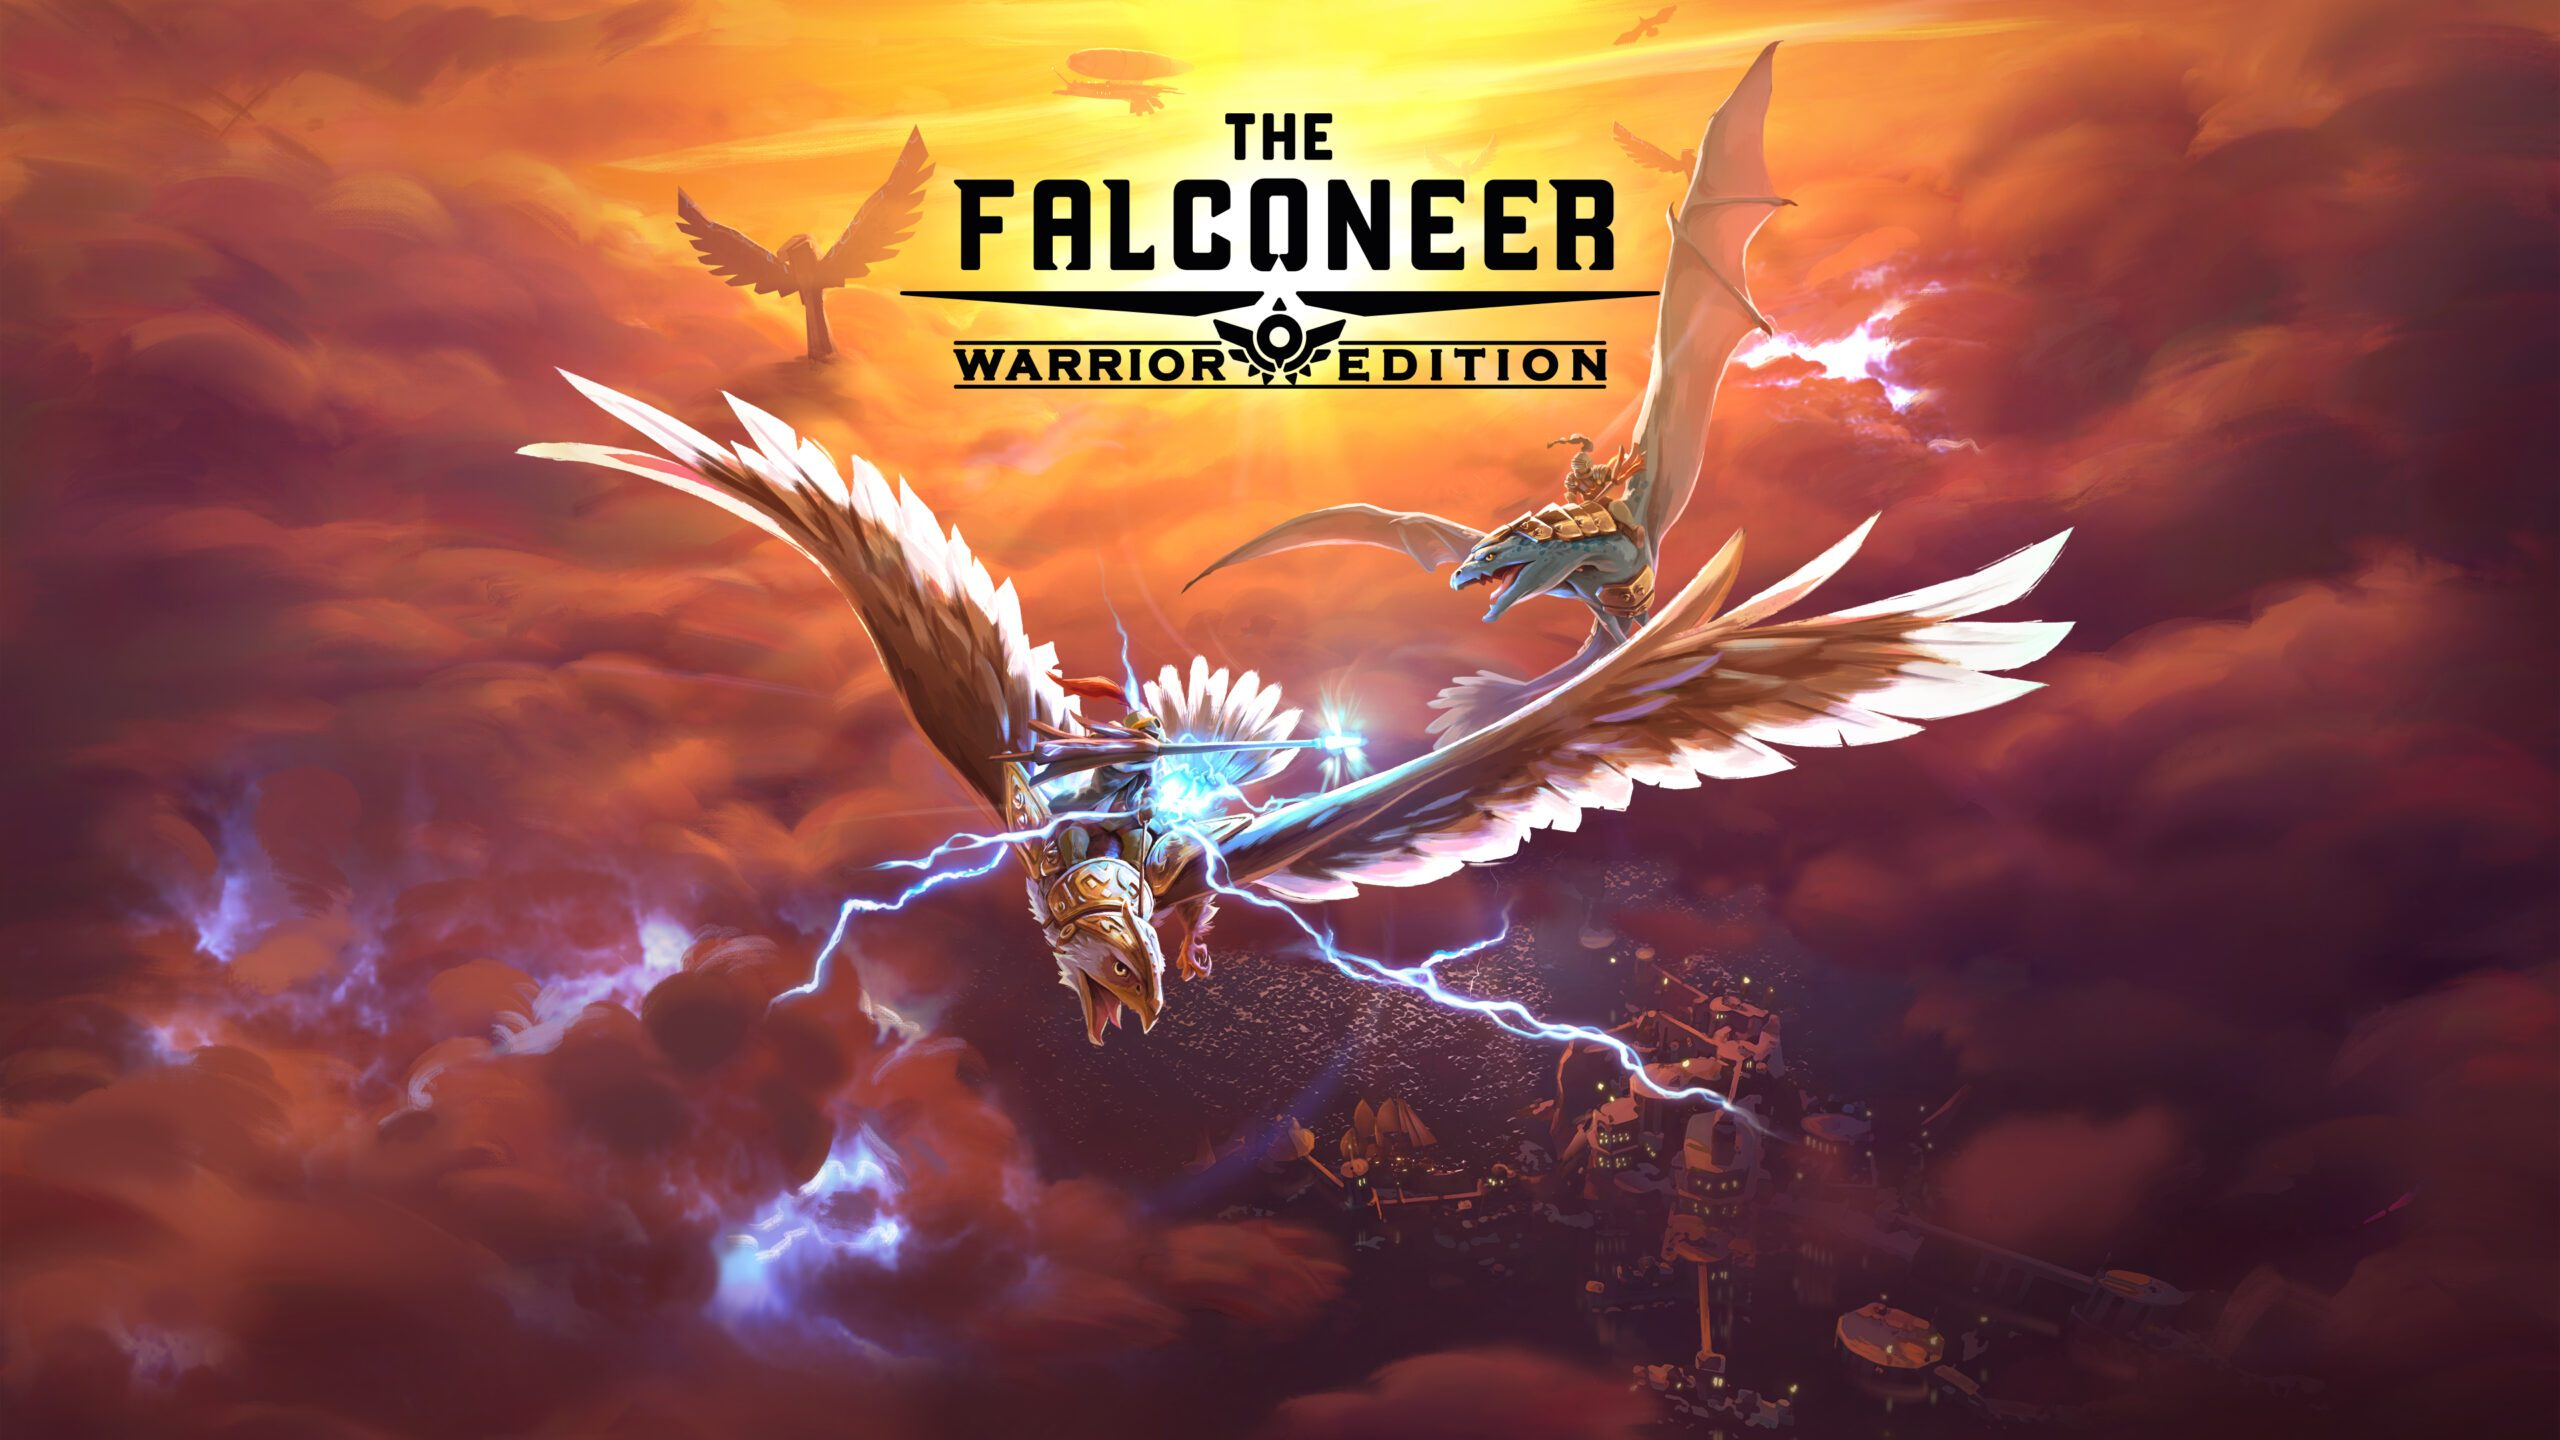 immersing-players-into-the-environment-of-the-falconeer-working-with-the-power-of-the-ps5